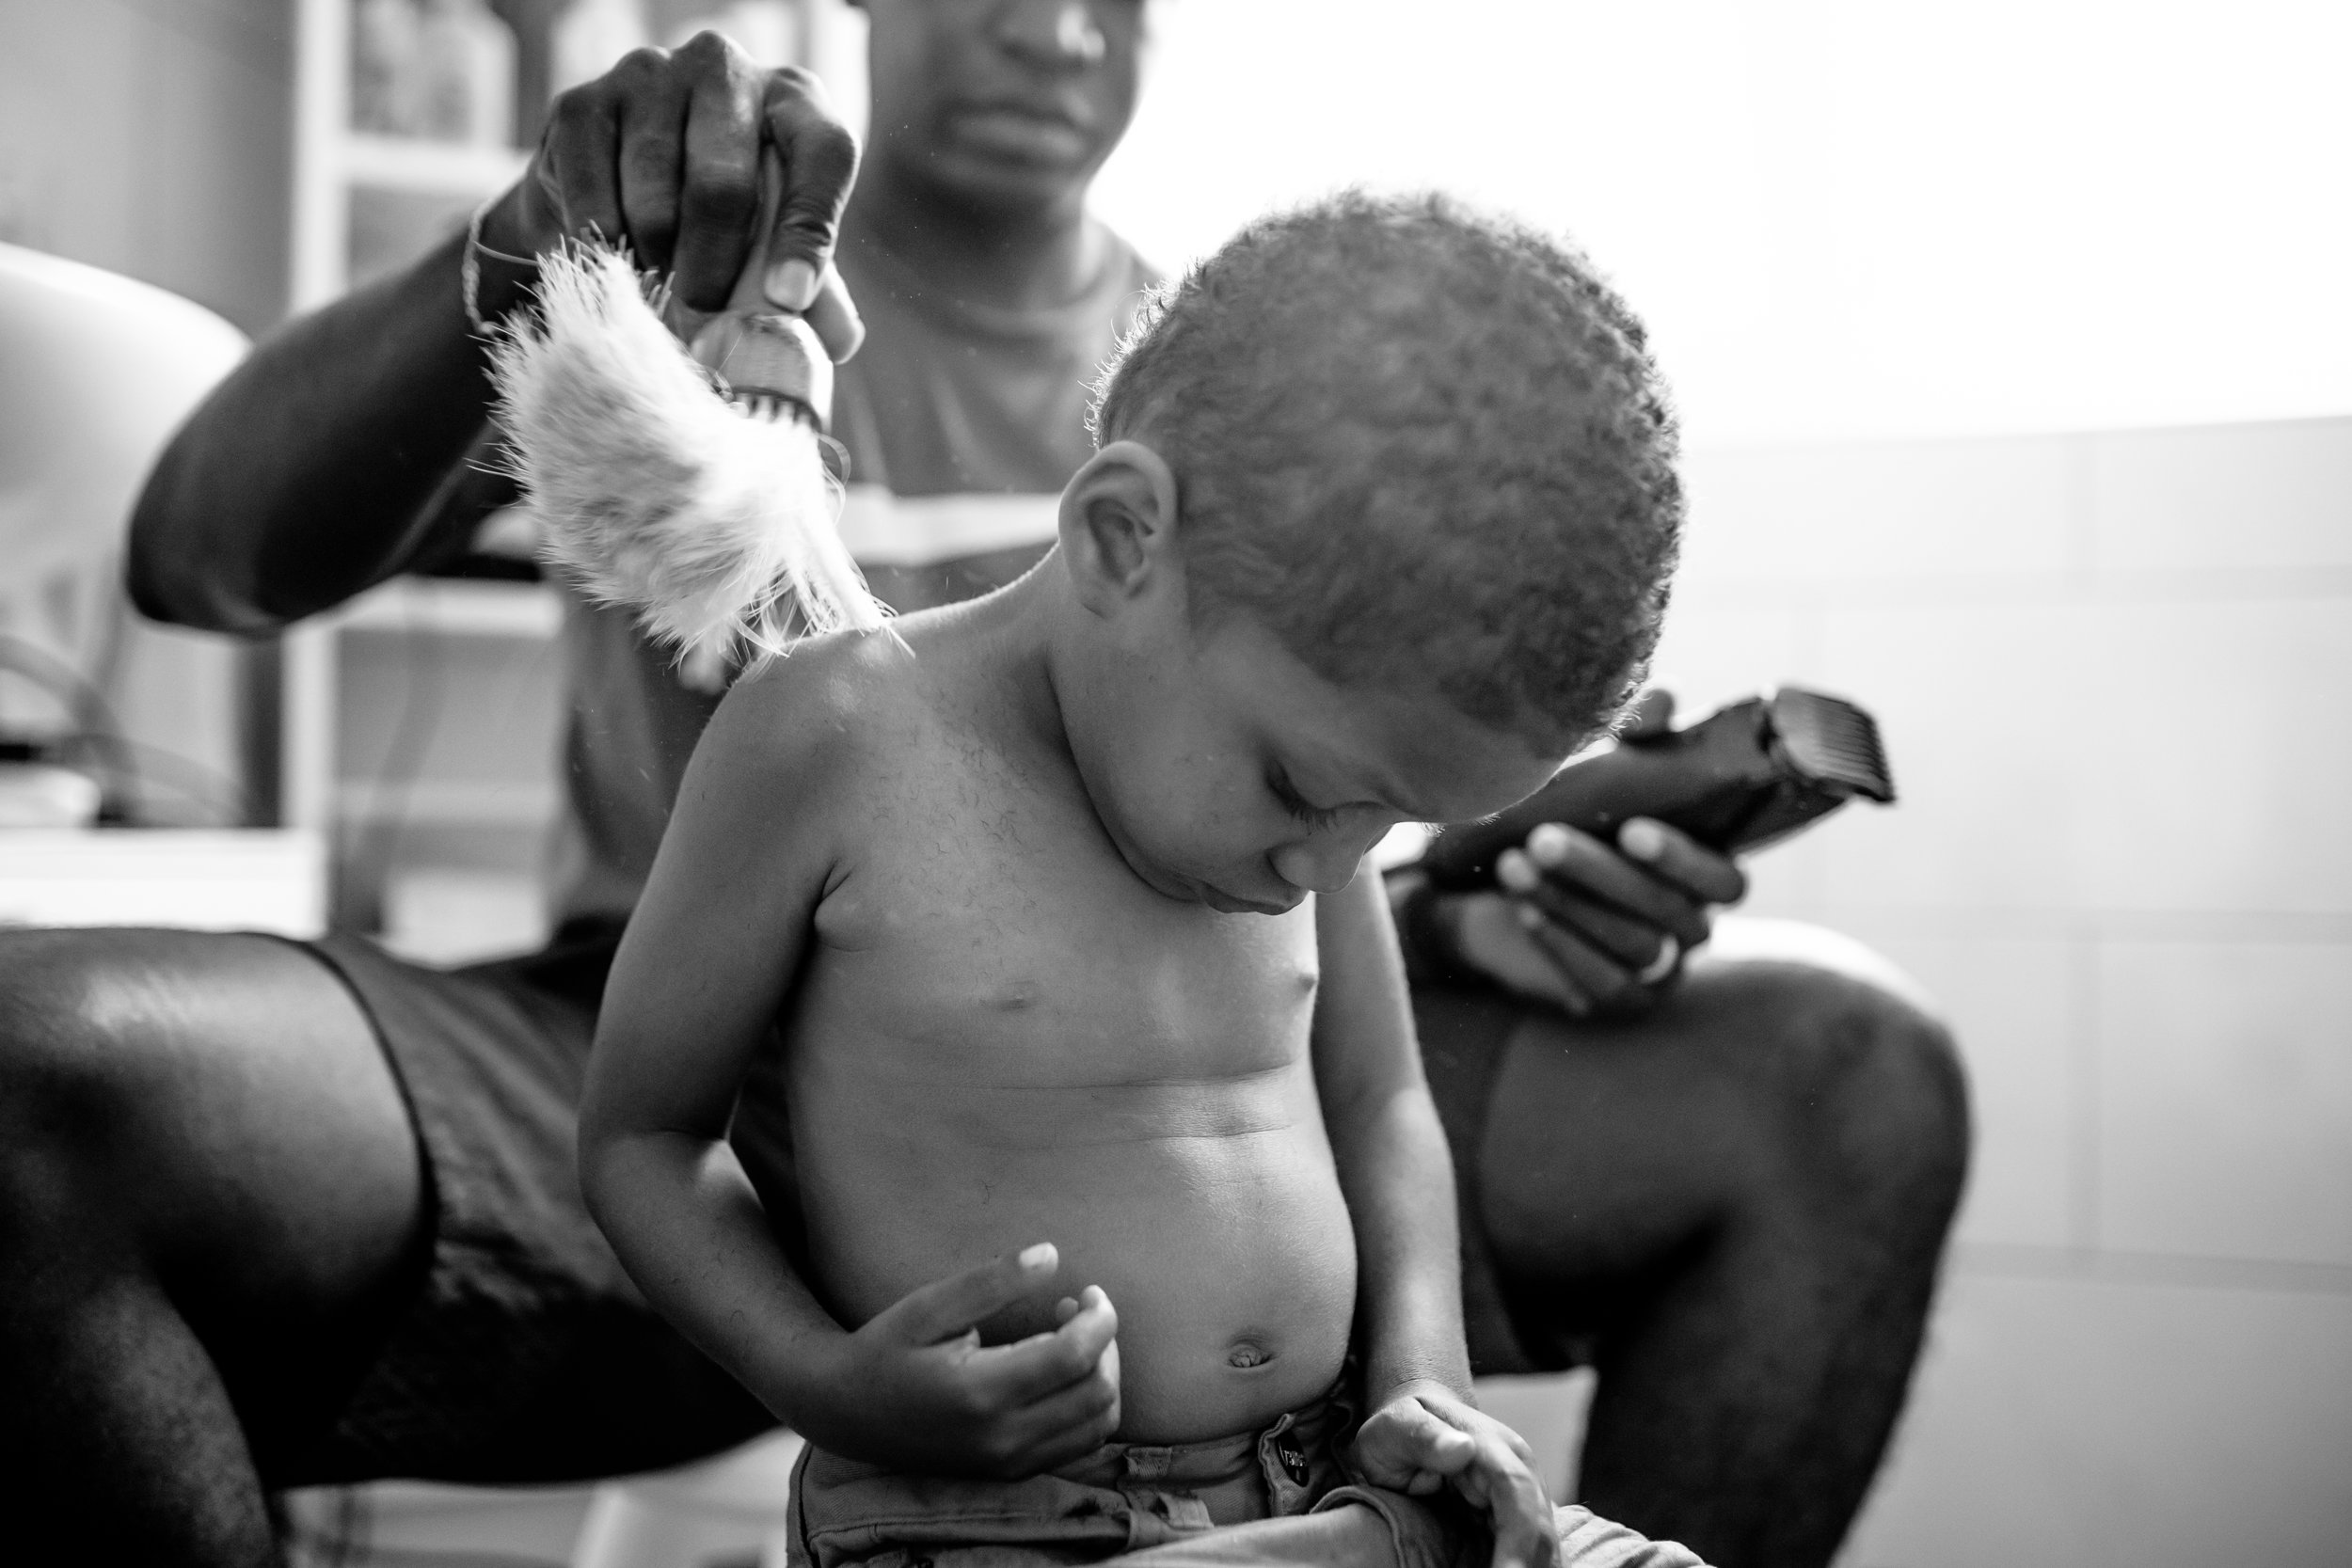 Boy looks at belly button while dad cuts his hair